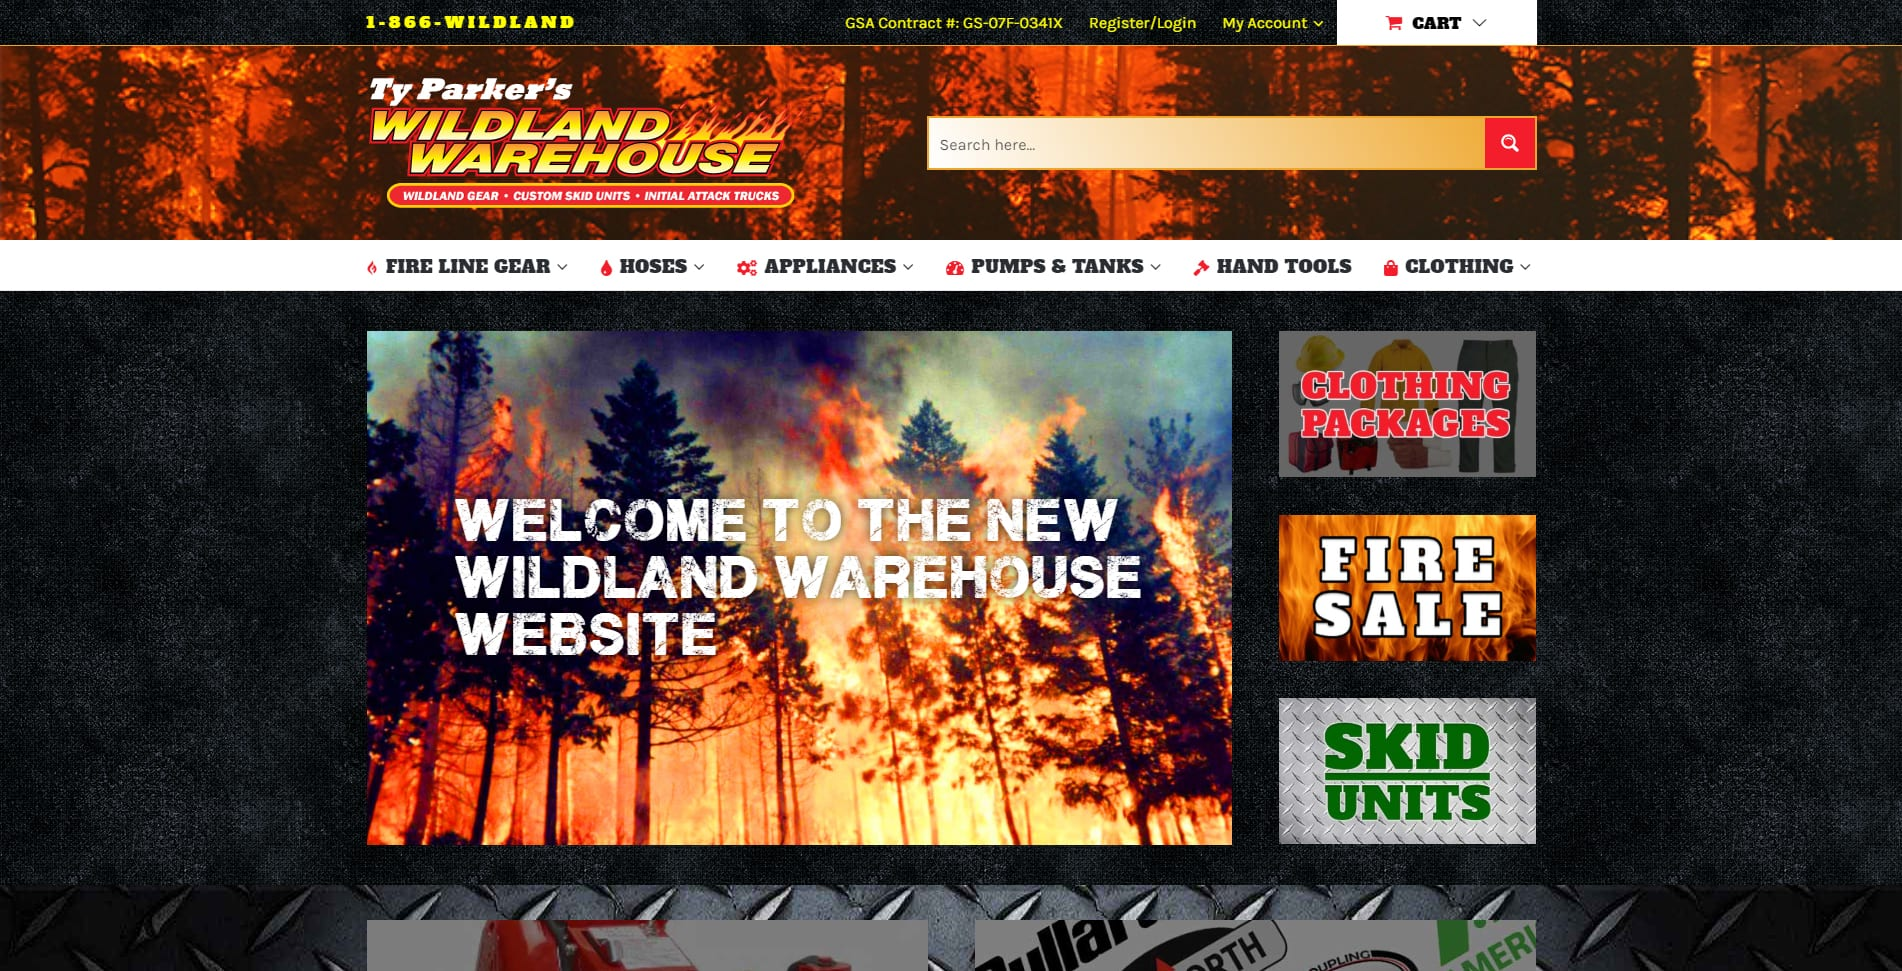 Wildland Warehouse - Blairstown, NJ